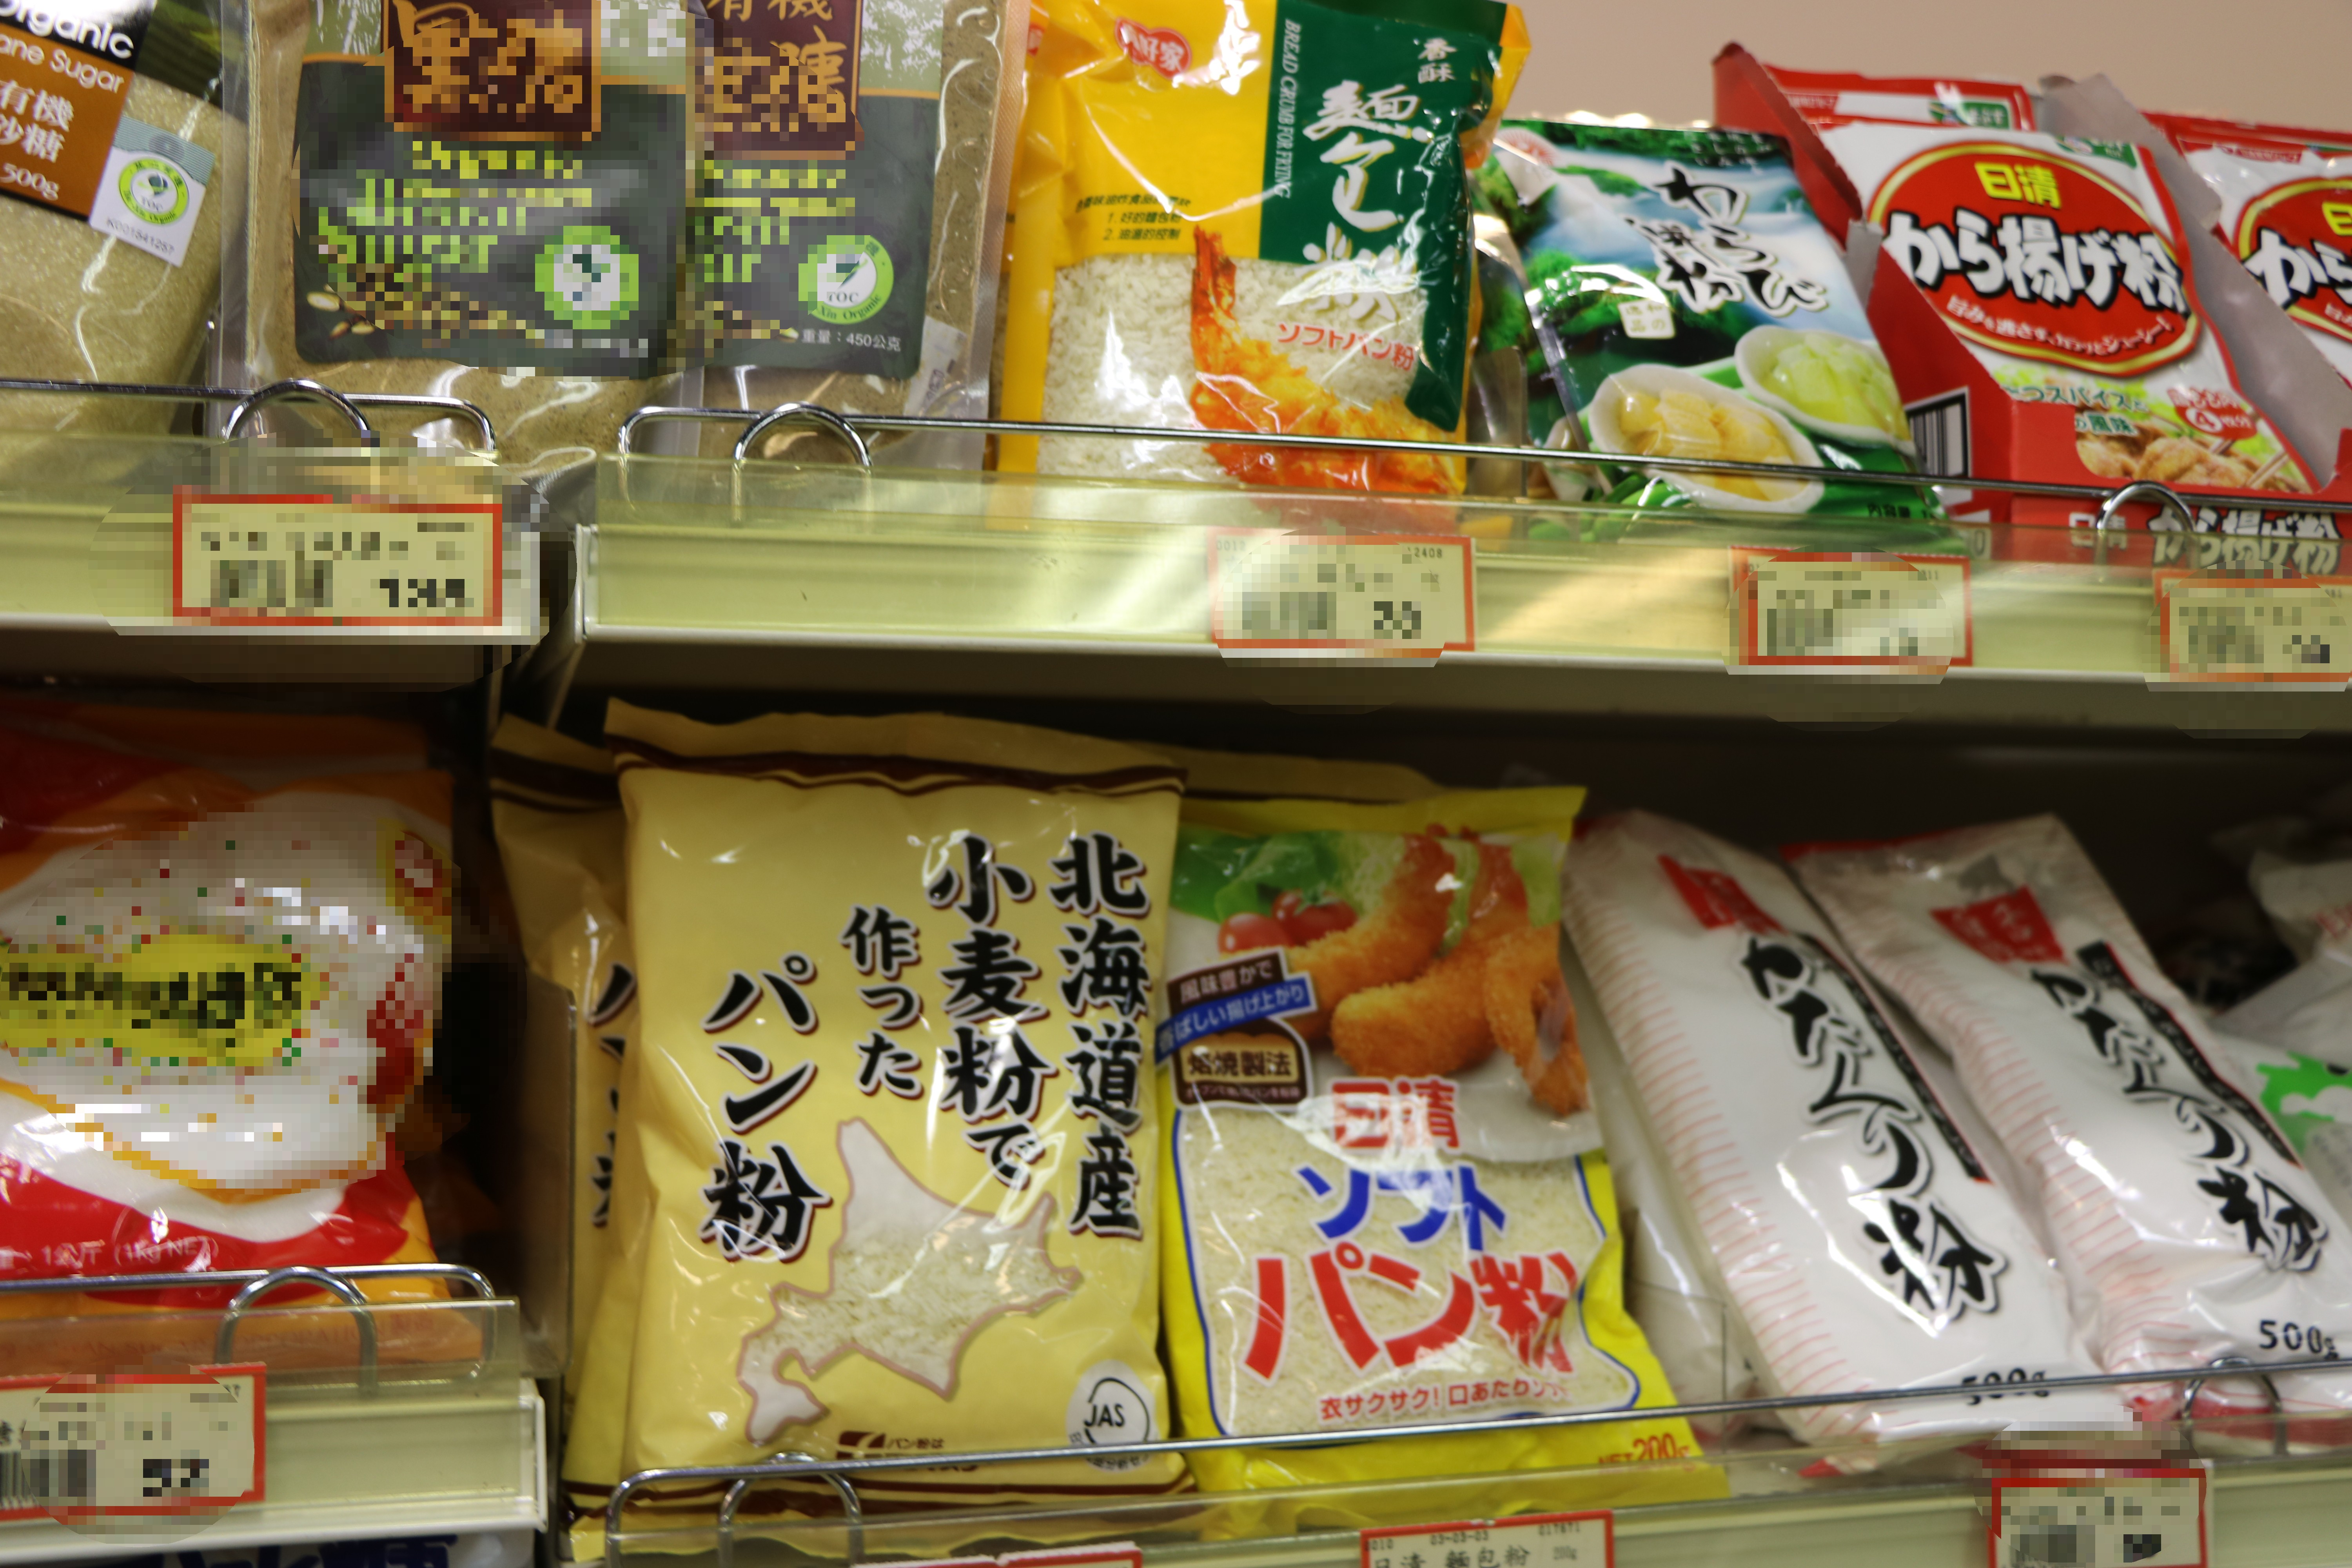 Taiwan has already imported some products. Photo/ Tsou, Fang-ting